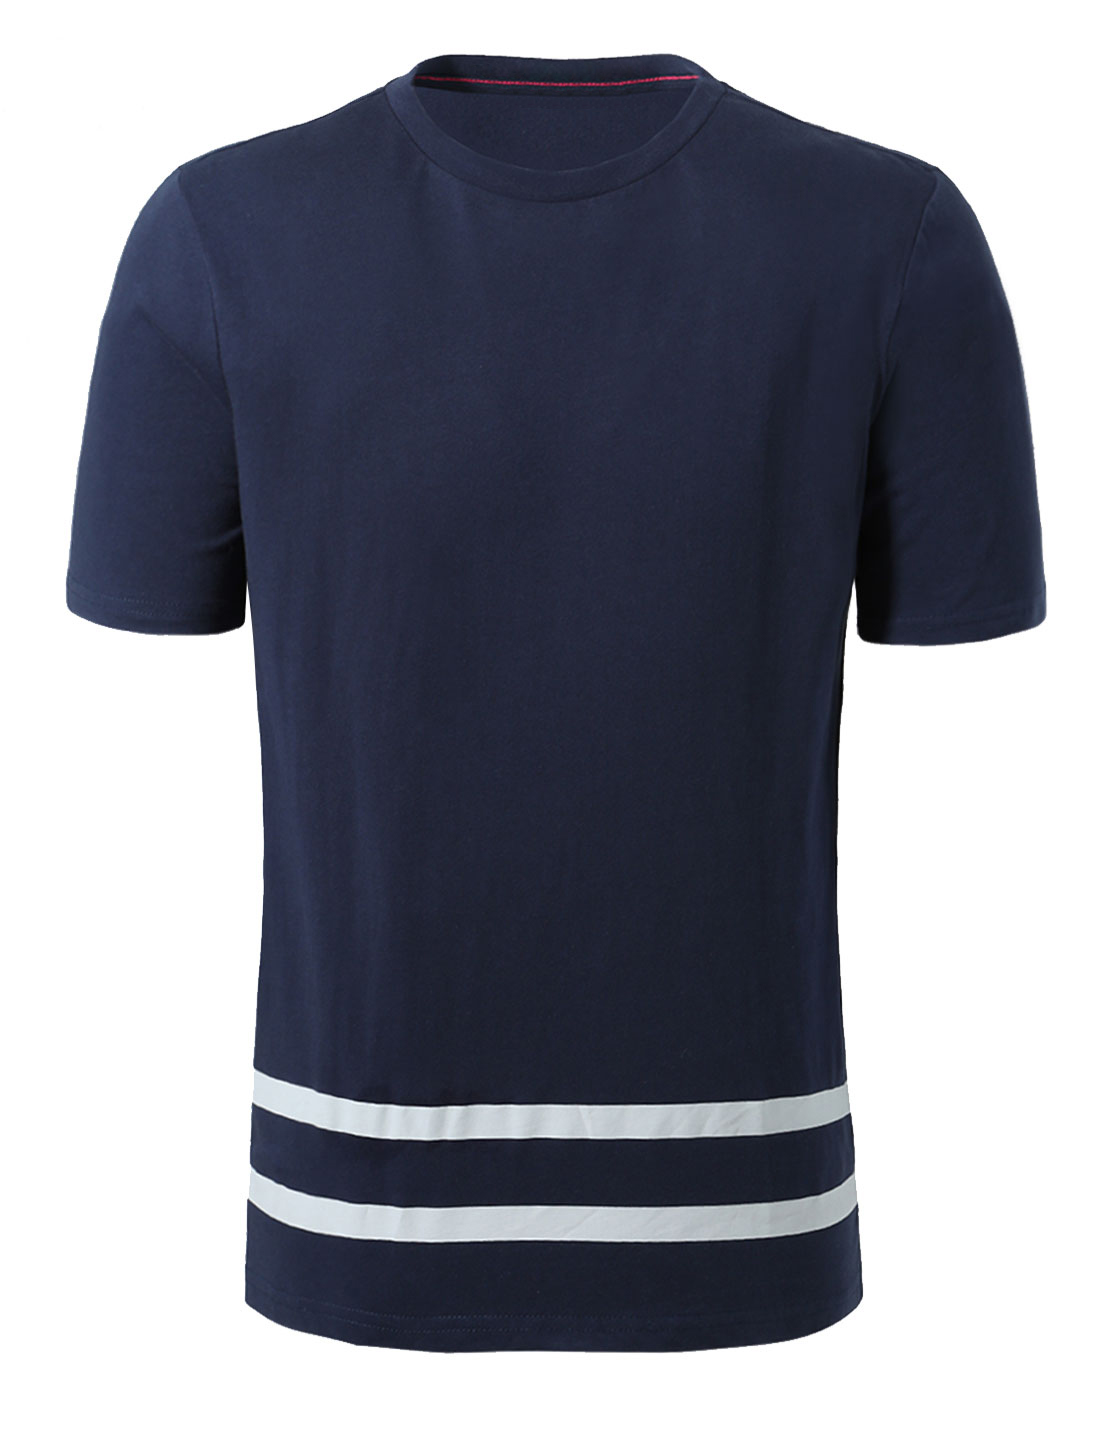 Men Striped Hem Short Sleeves Round Neck Cotton T-Shirt Navy Blue M